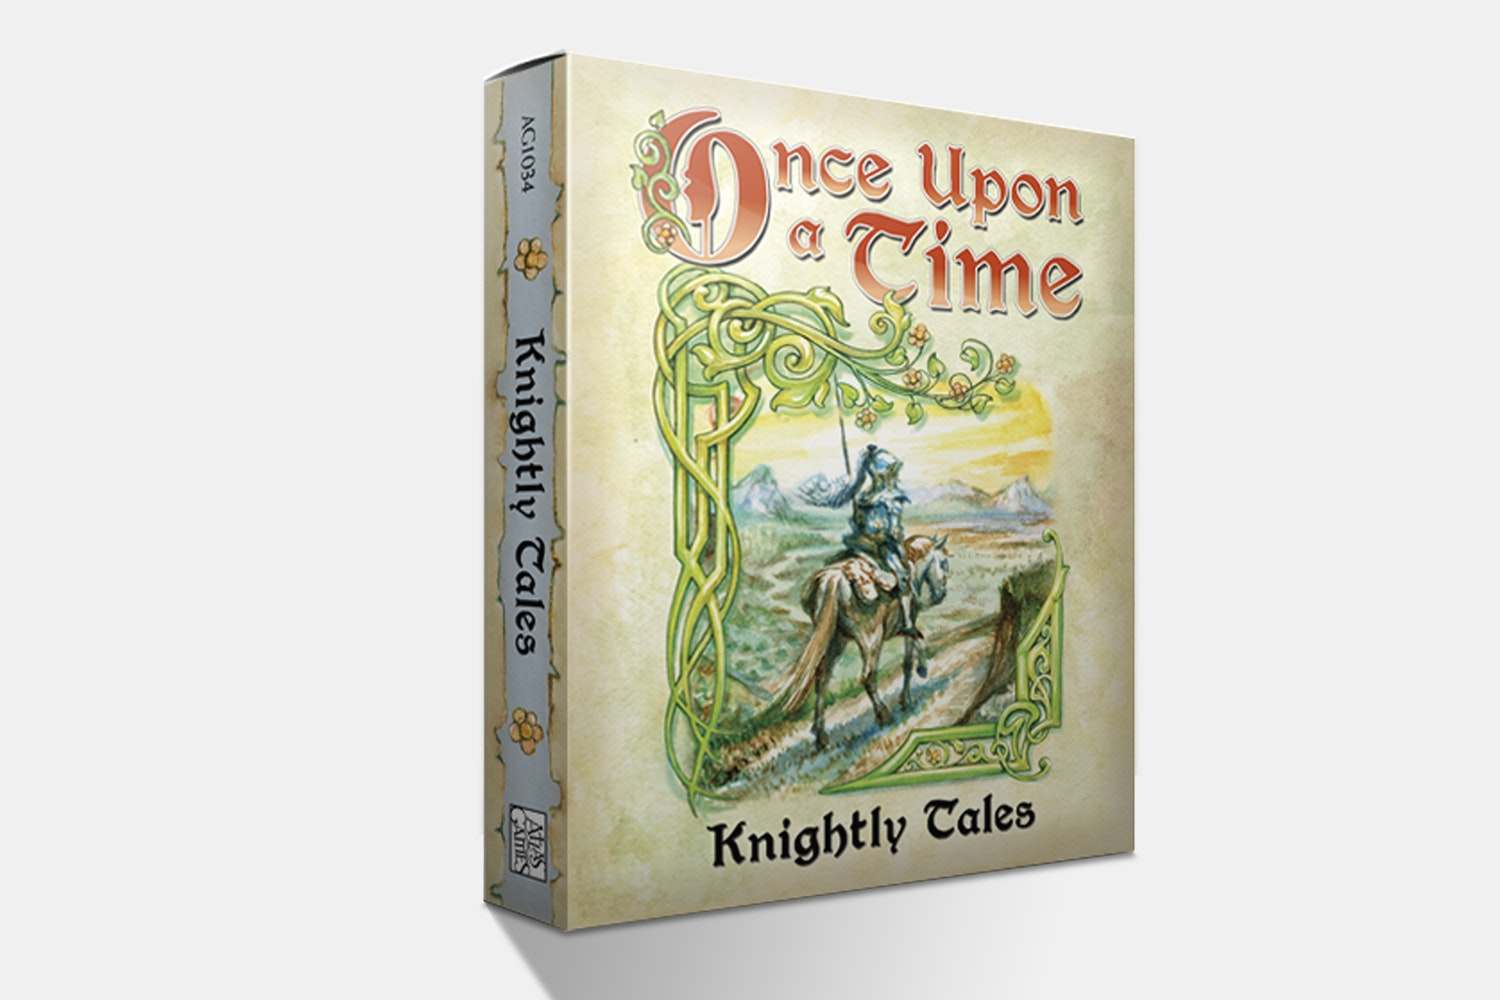 Once Upon a Time (Knightly Tales)